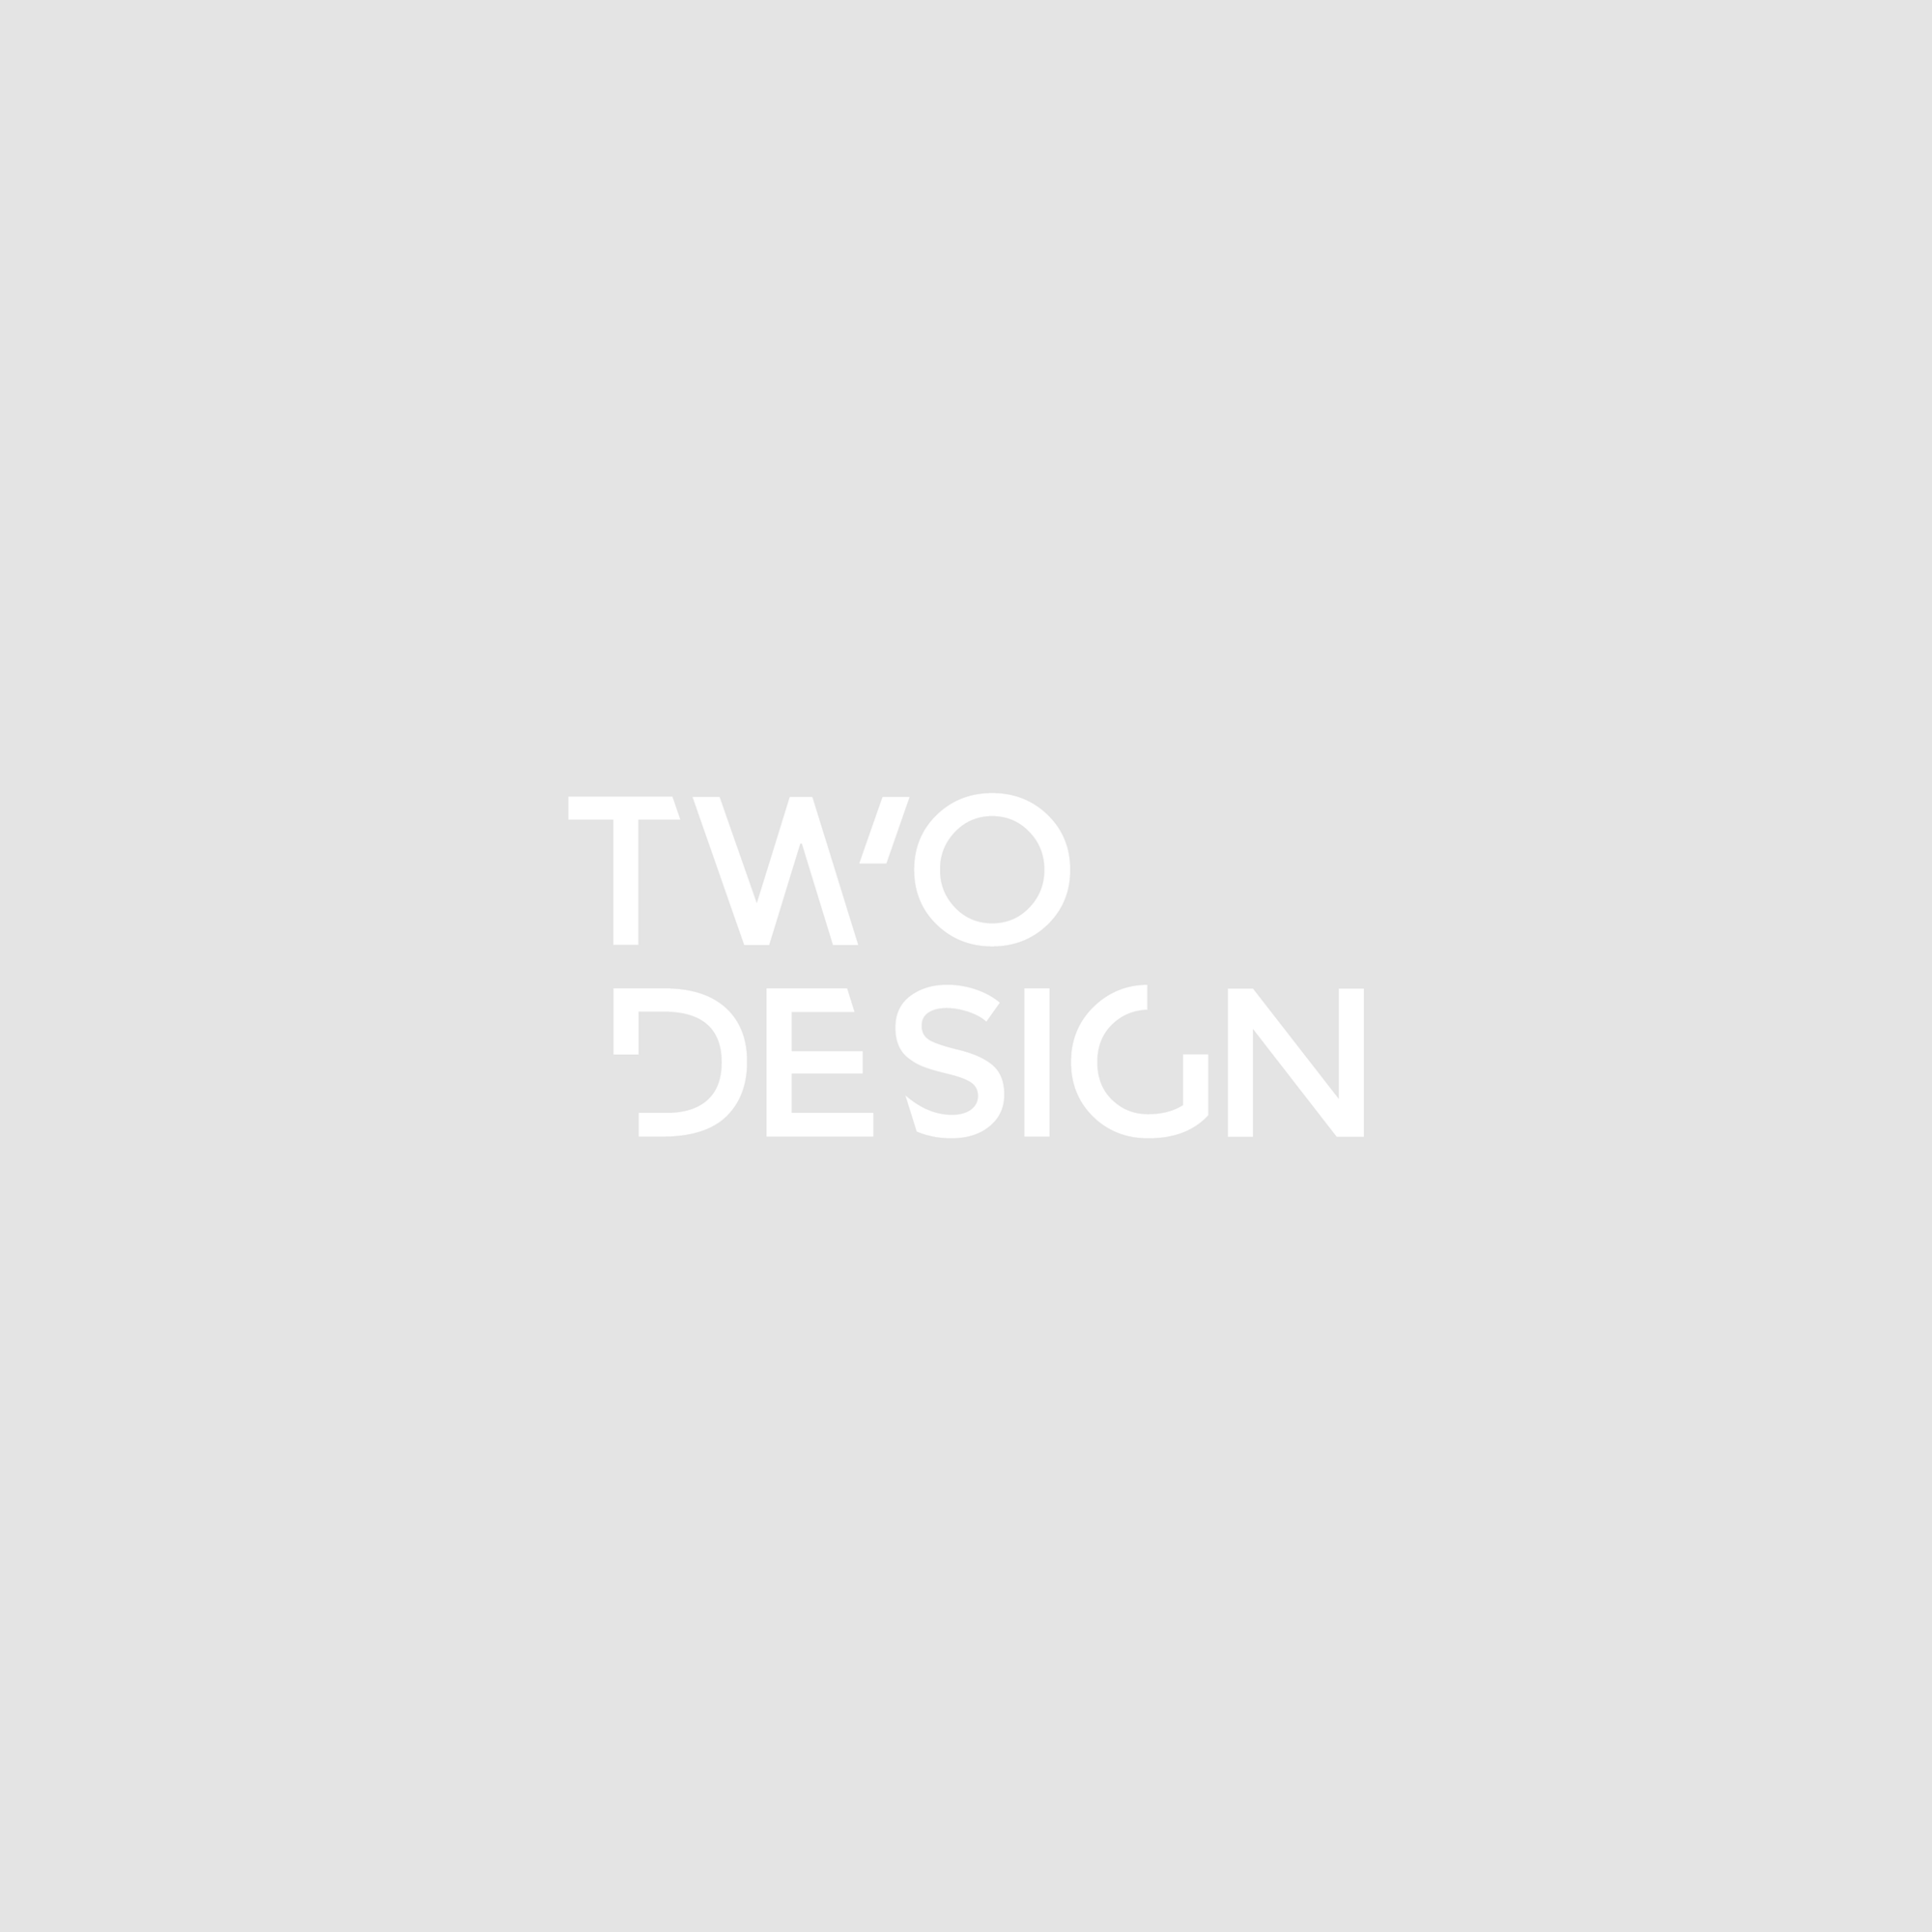 Two_design_placeholder 5.jpg